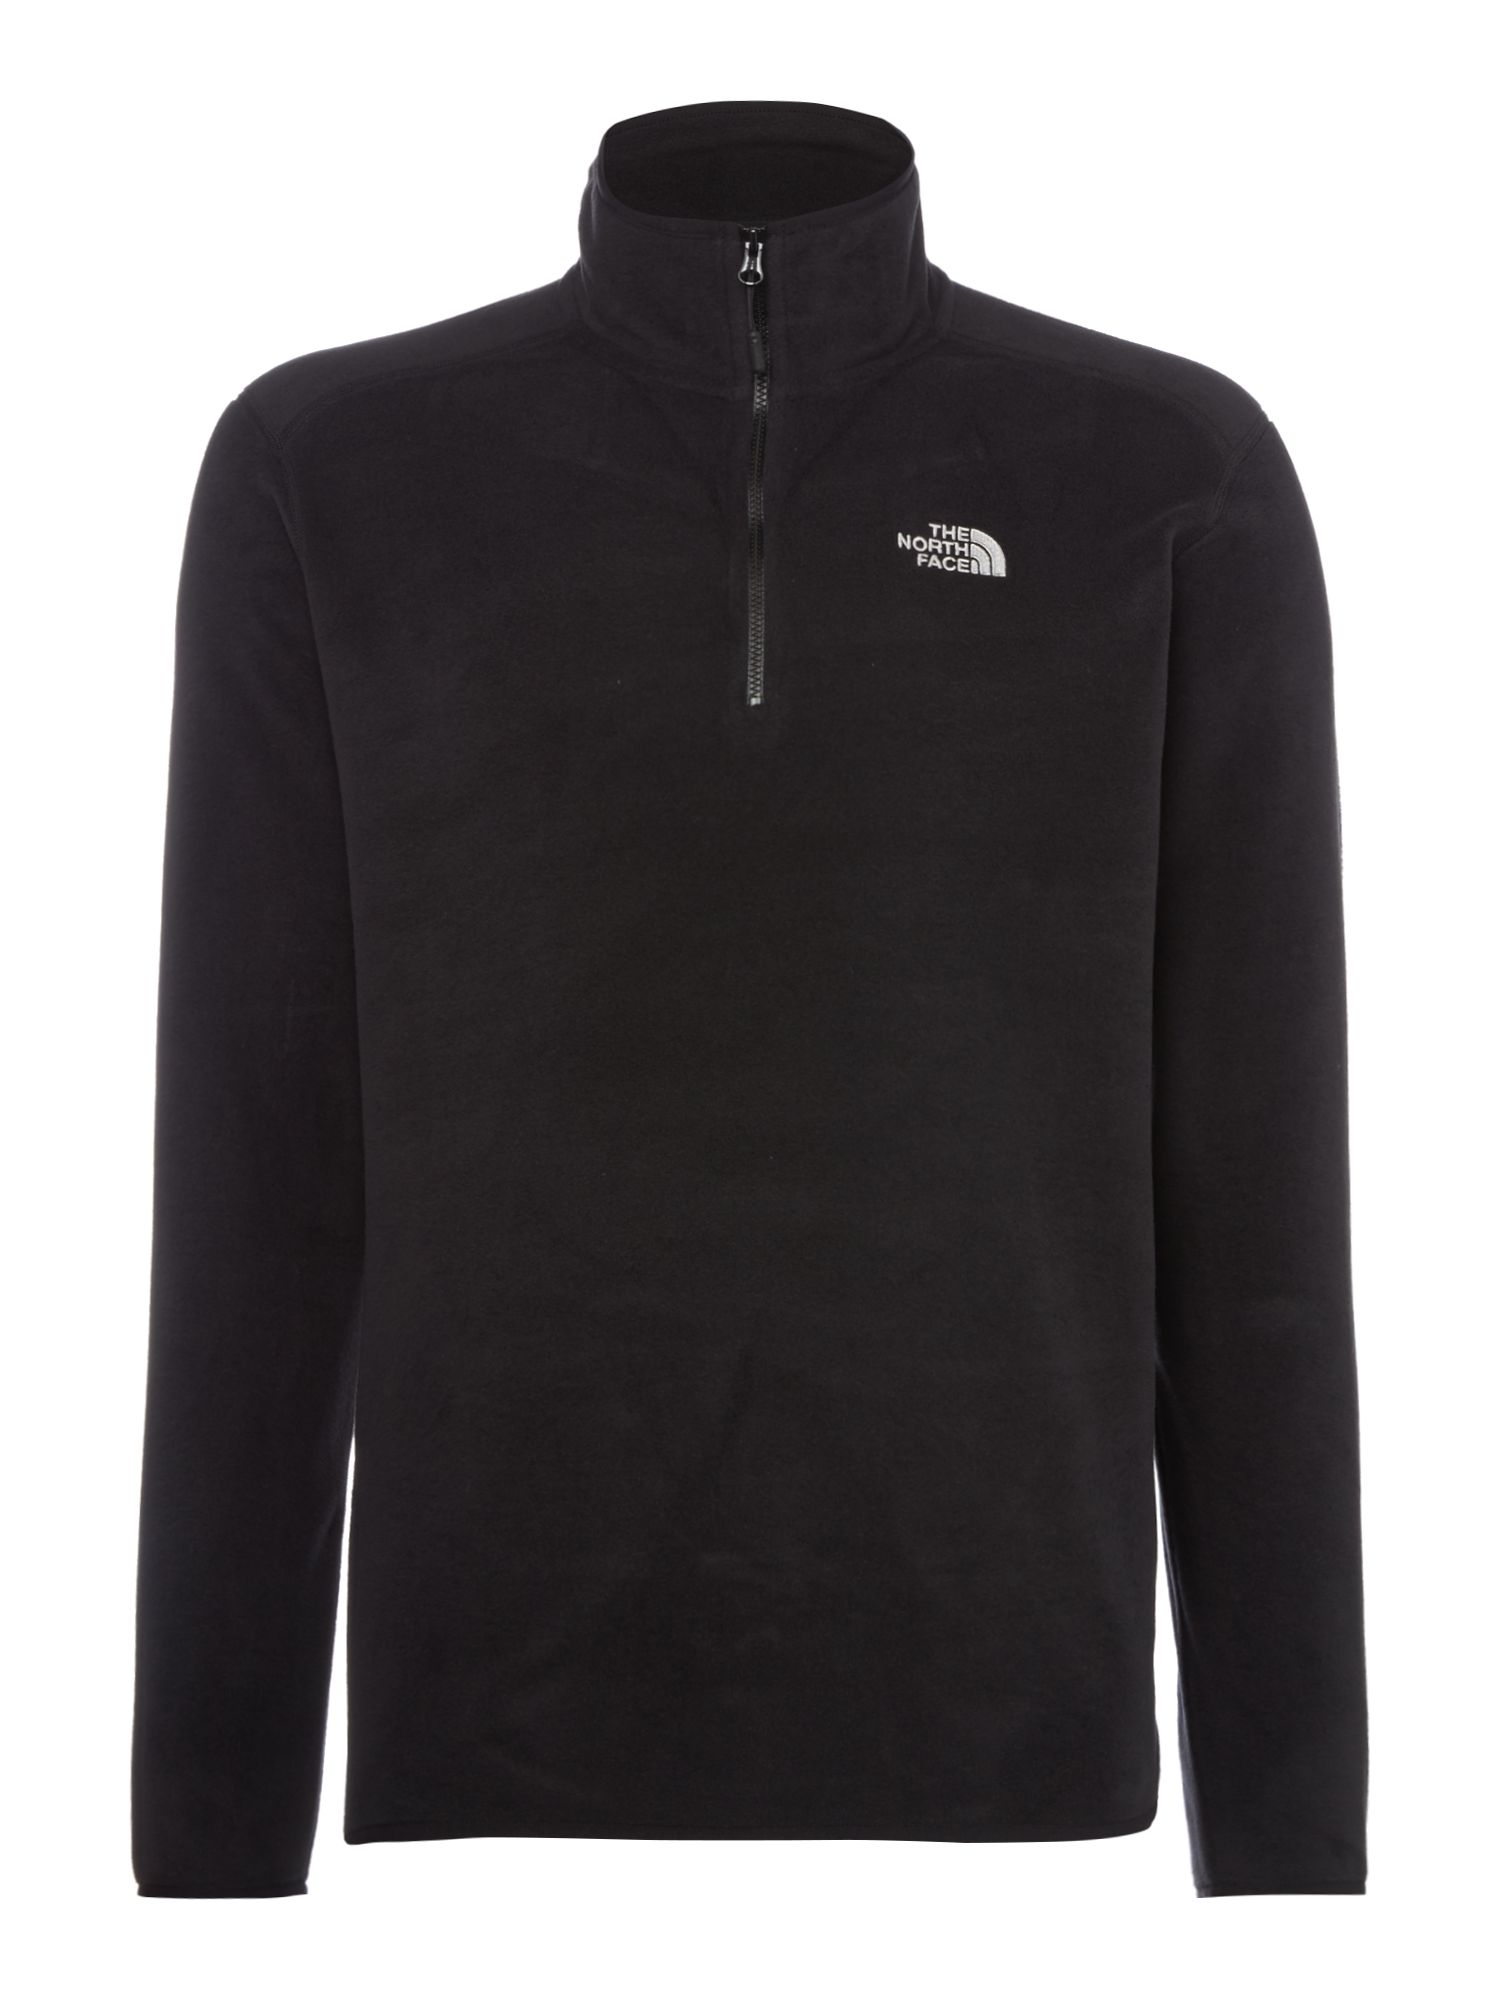 Men's The North Face 100 Glacier 1/4 zip fleece, Black